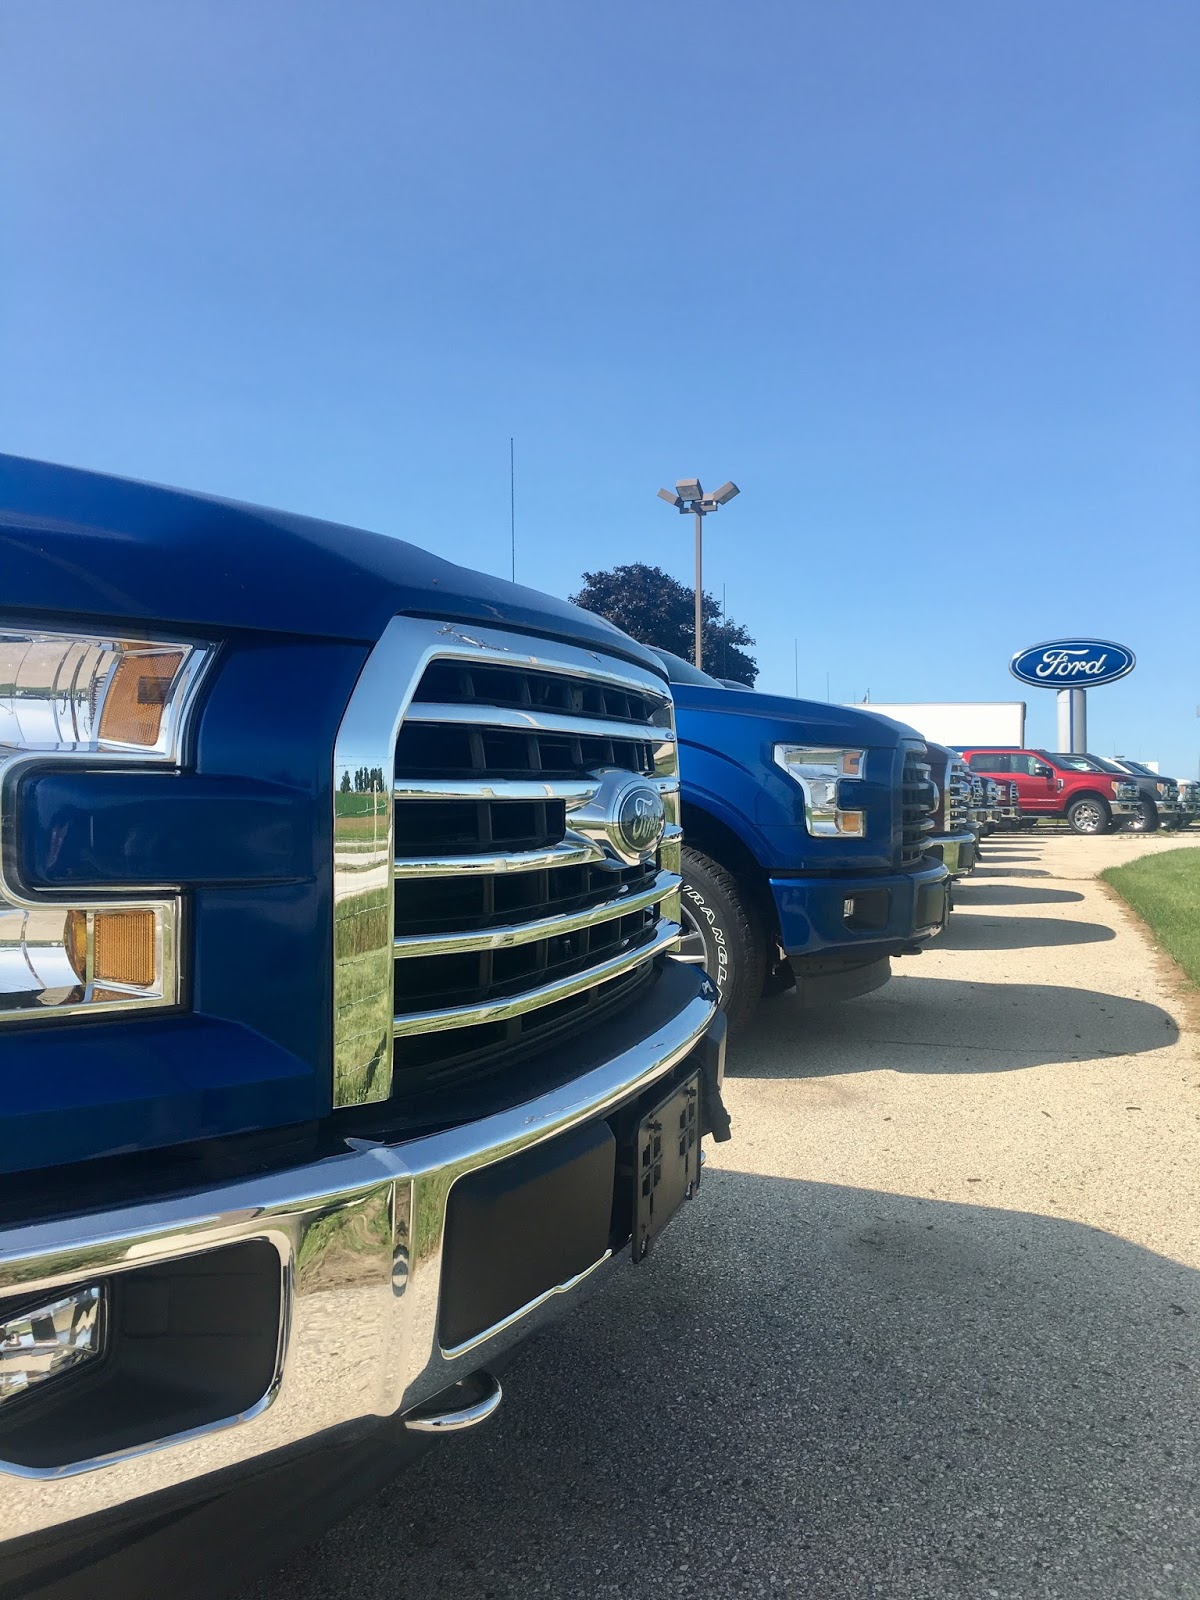 Van Horn Automotive Group Adds Ford Lomira to Family of